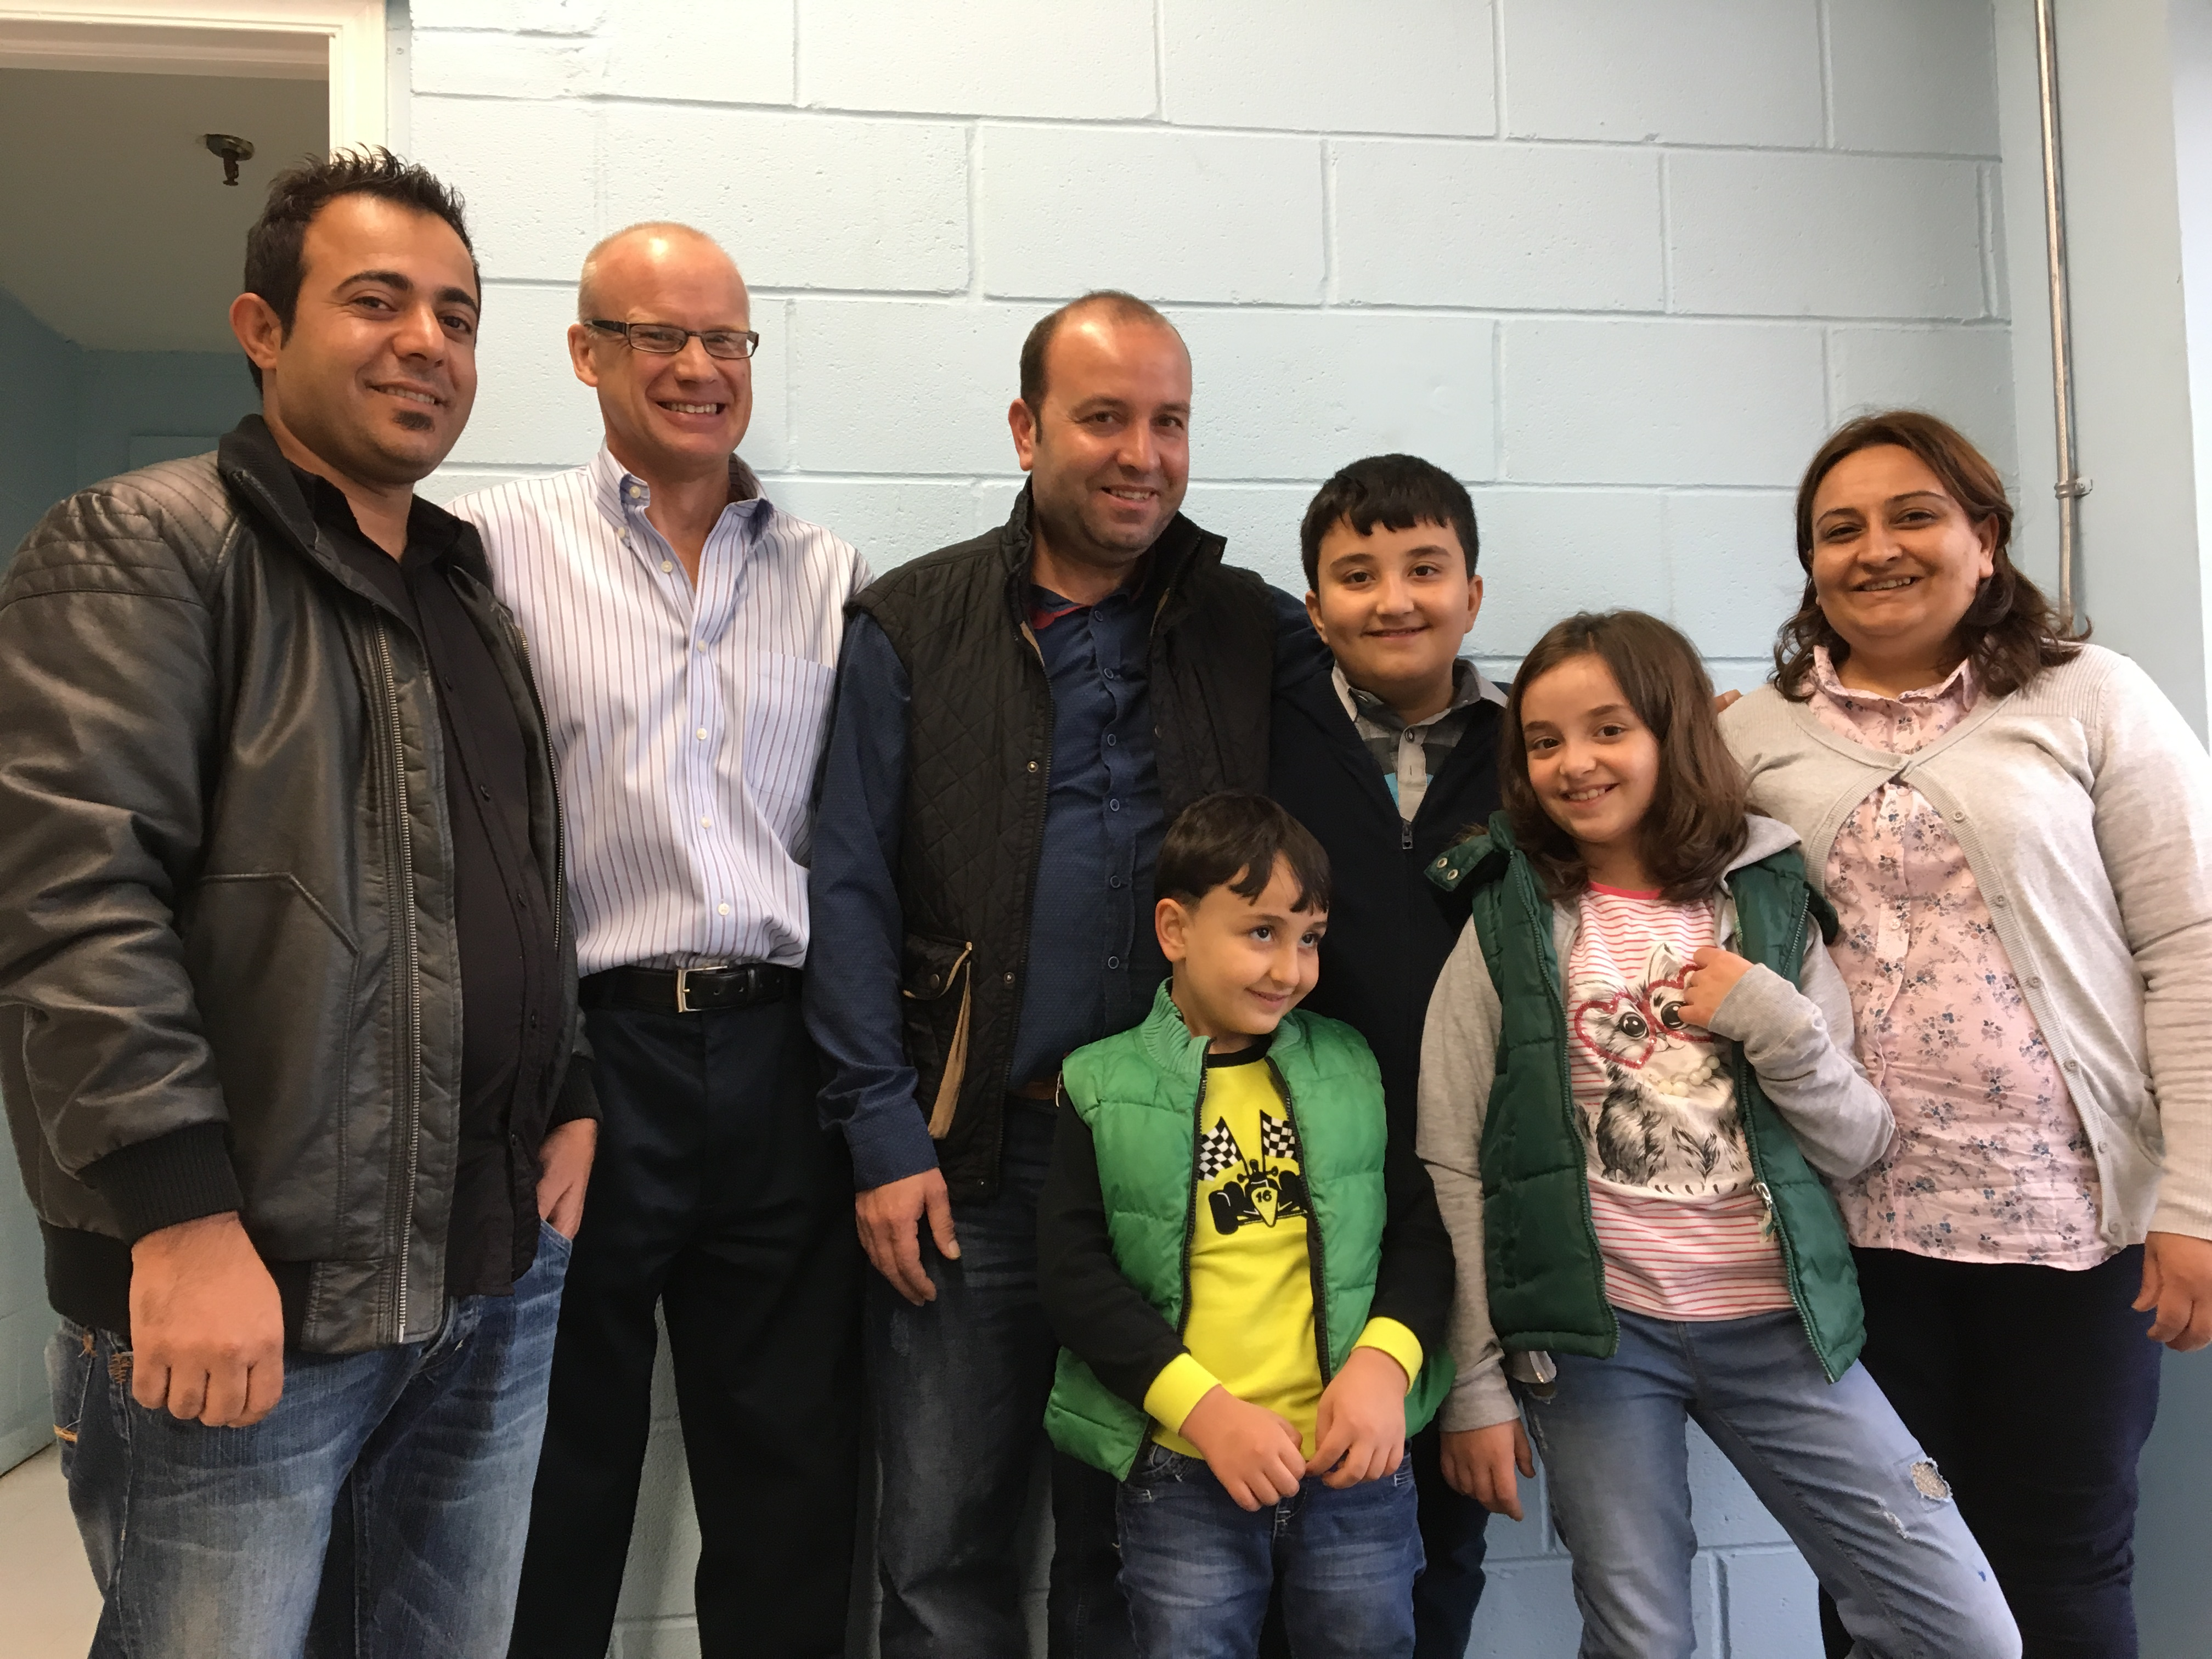 From left: Interpreter John Jowin, David Hobson, Halil Dudu, his children Muhammed, 7; Azad, 11; and Simaf, 9; and his wife Emine